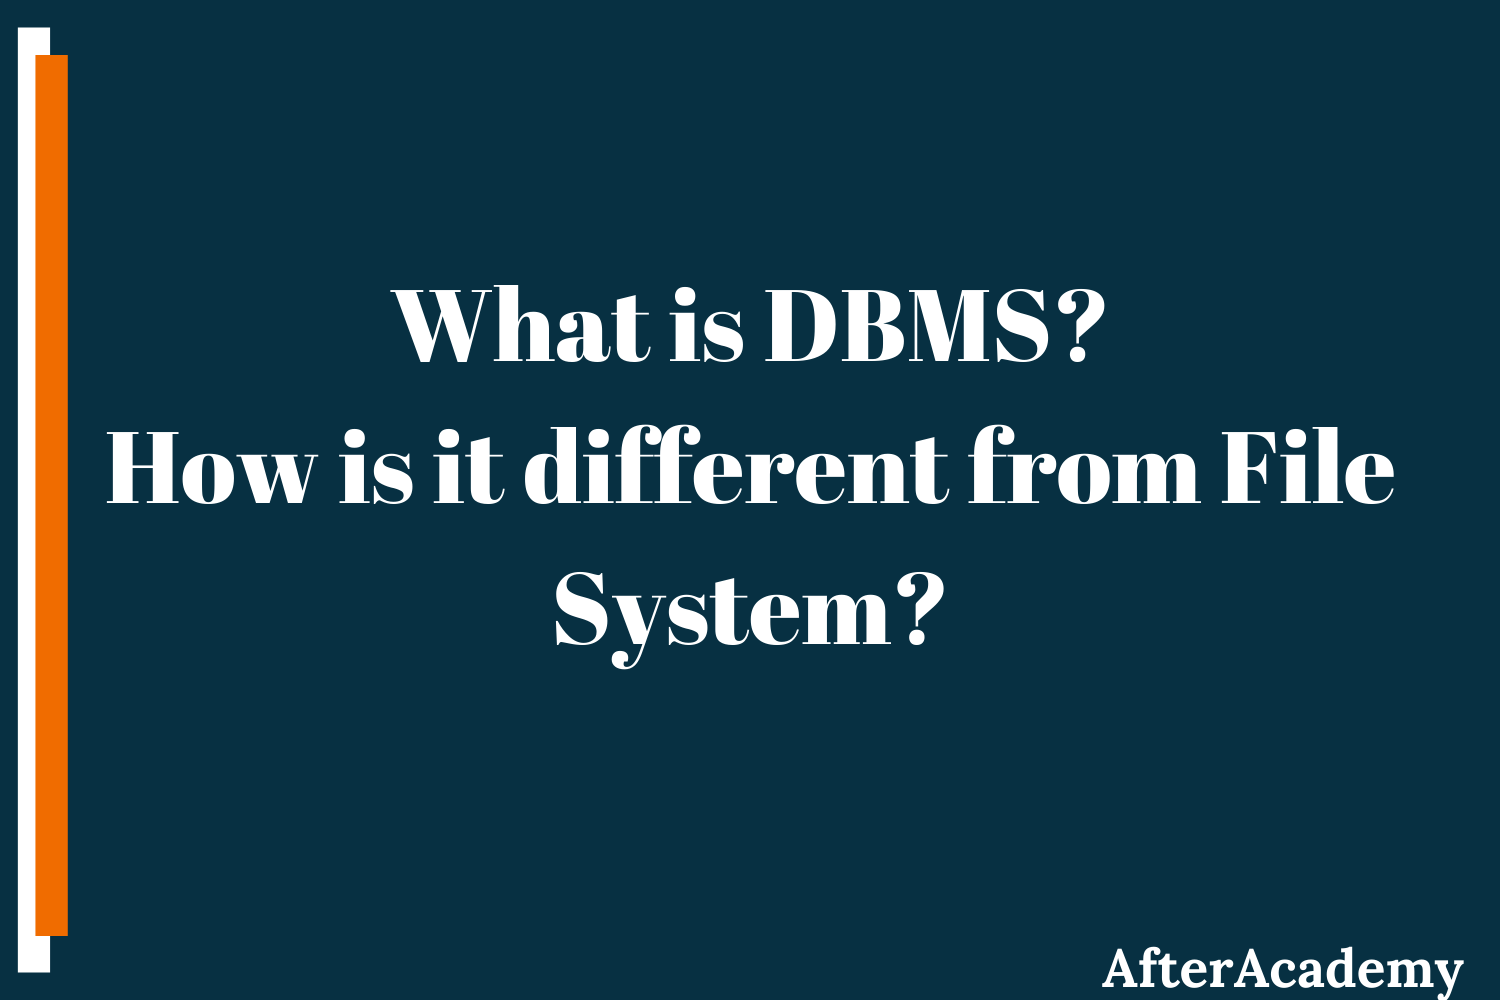 What is a Database Management System and how is it different from a File System?